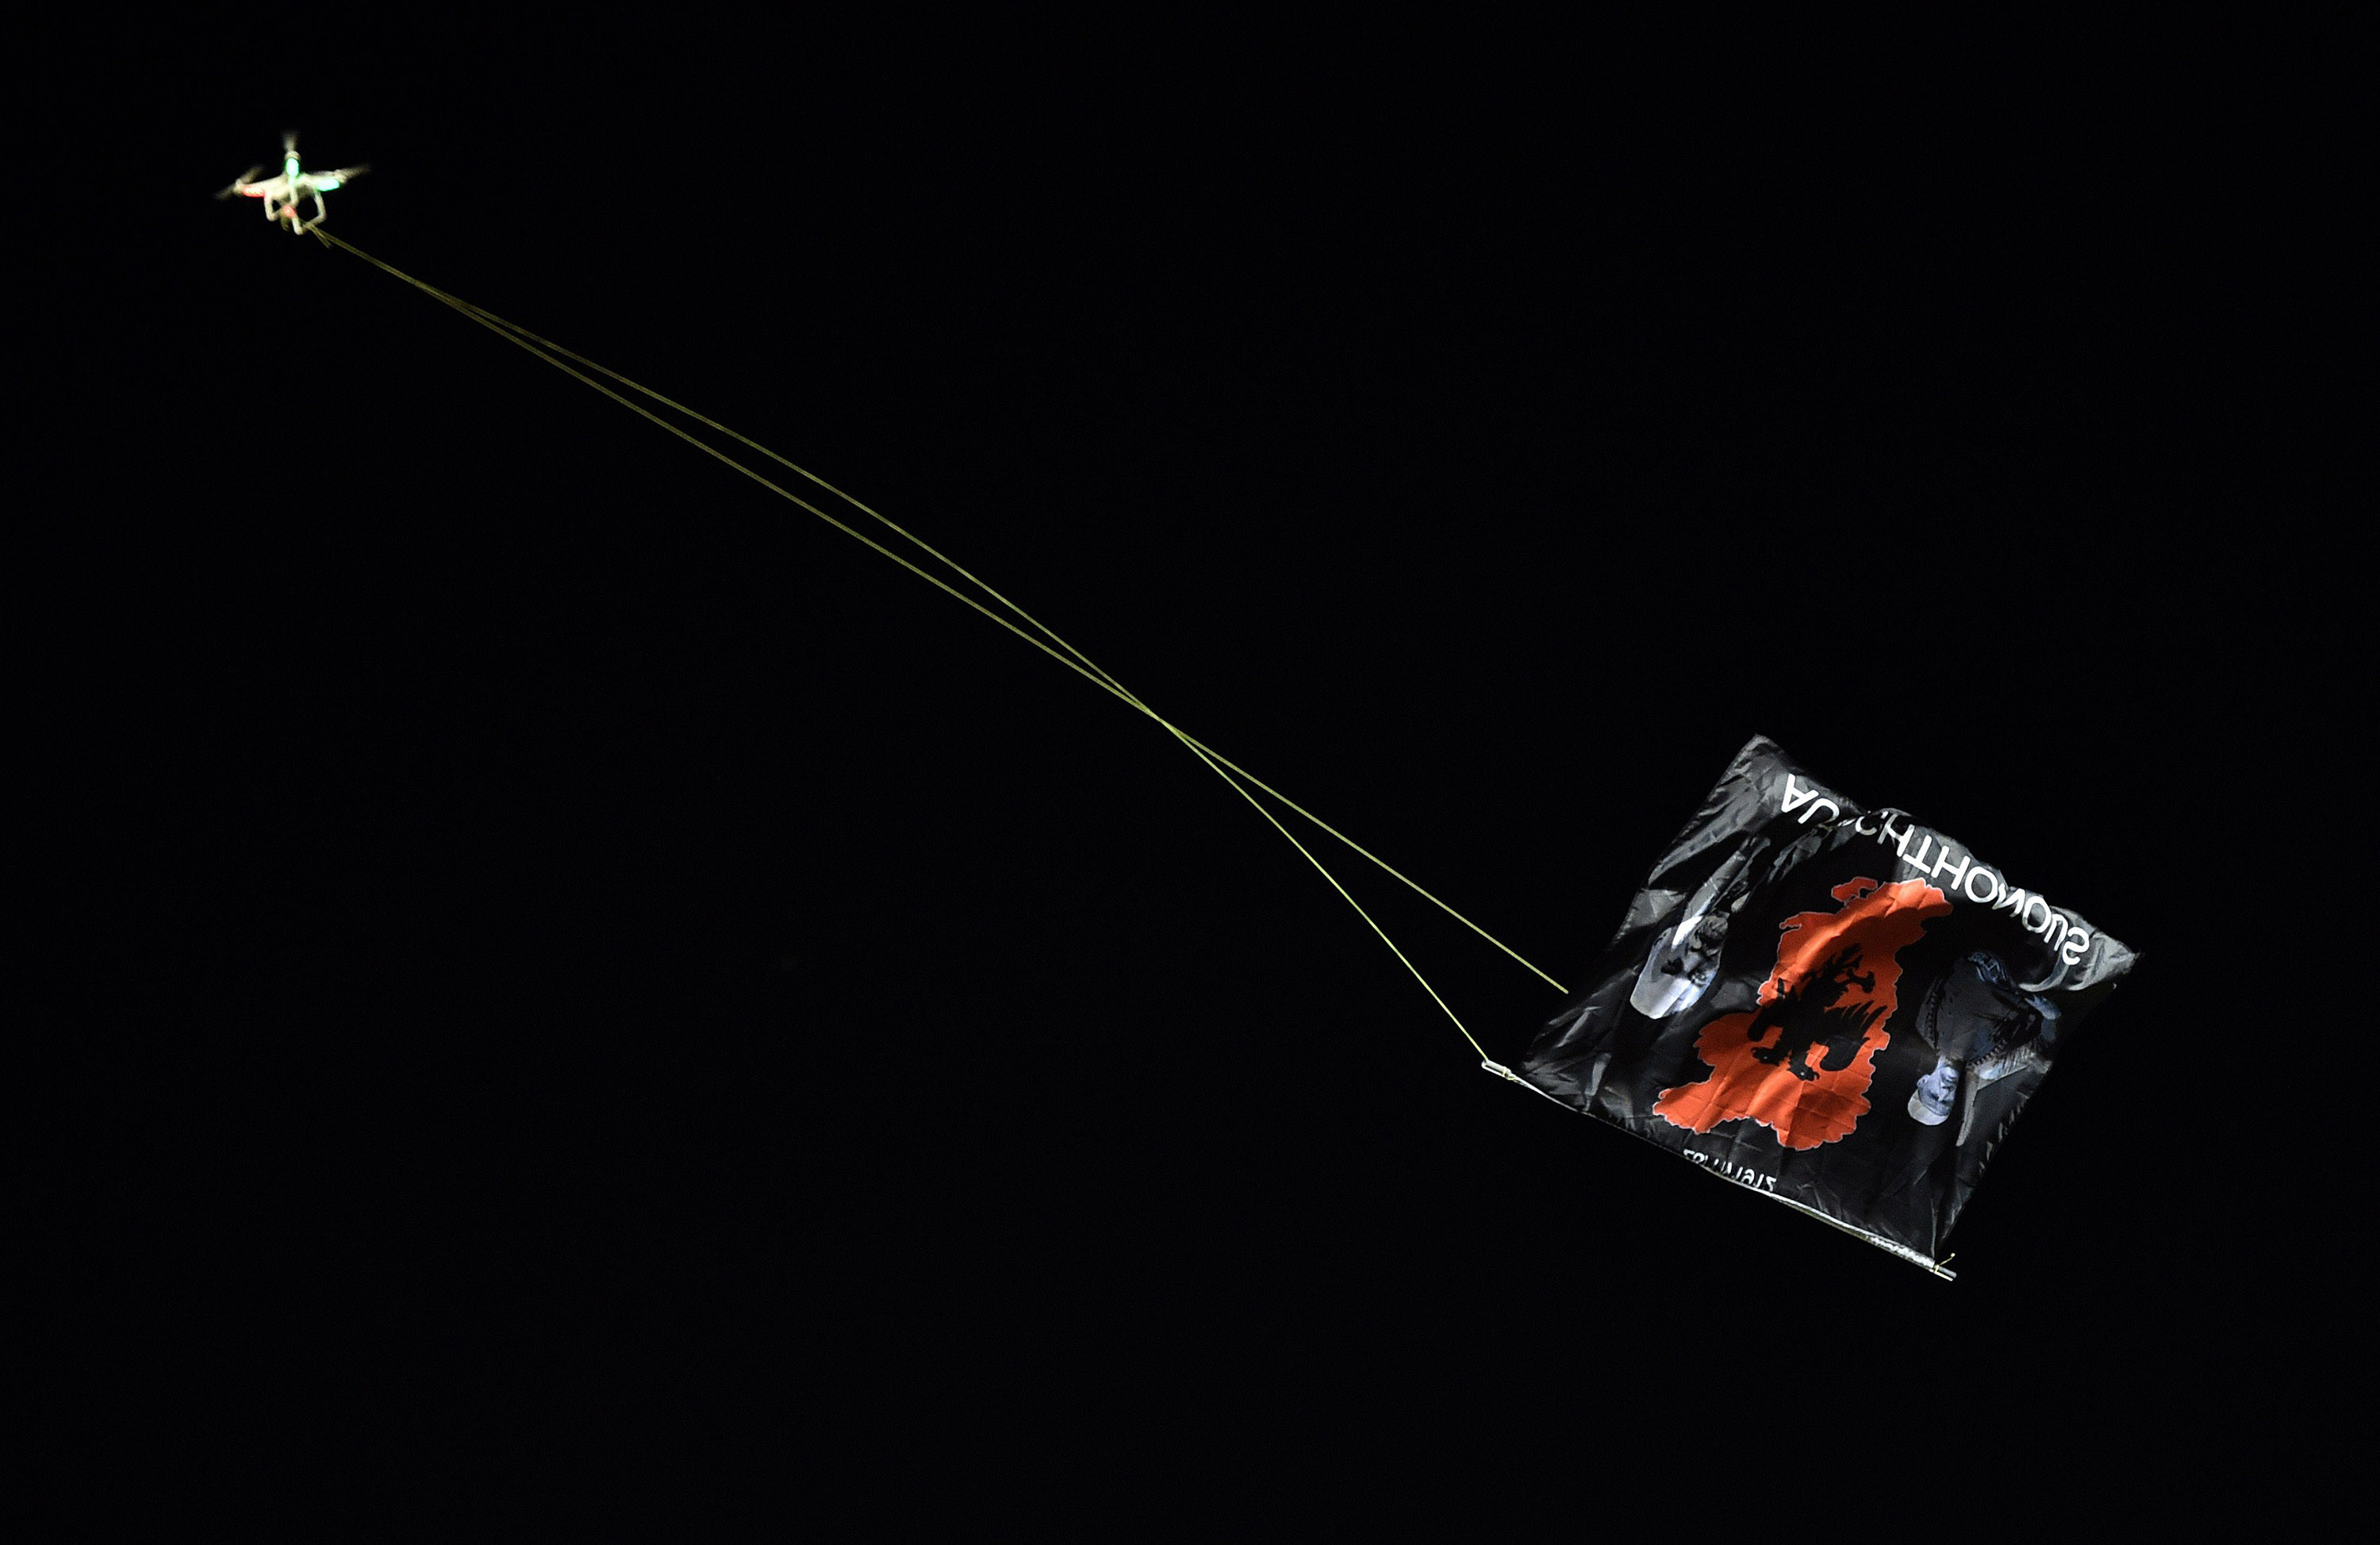 A flag with Albanian national symbols attached to a remotely operated drone flies in the stadium  during the EURO 2016 group I football match between Serbia and Albania in Belgrade, Serbia on Oct. 14, 2014.